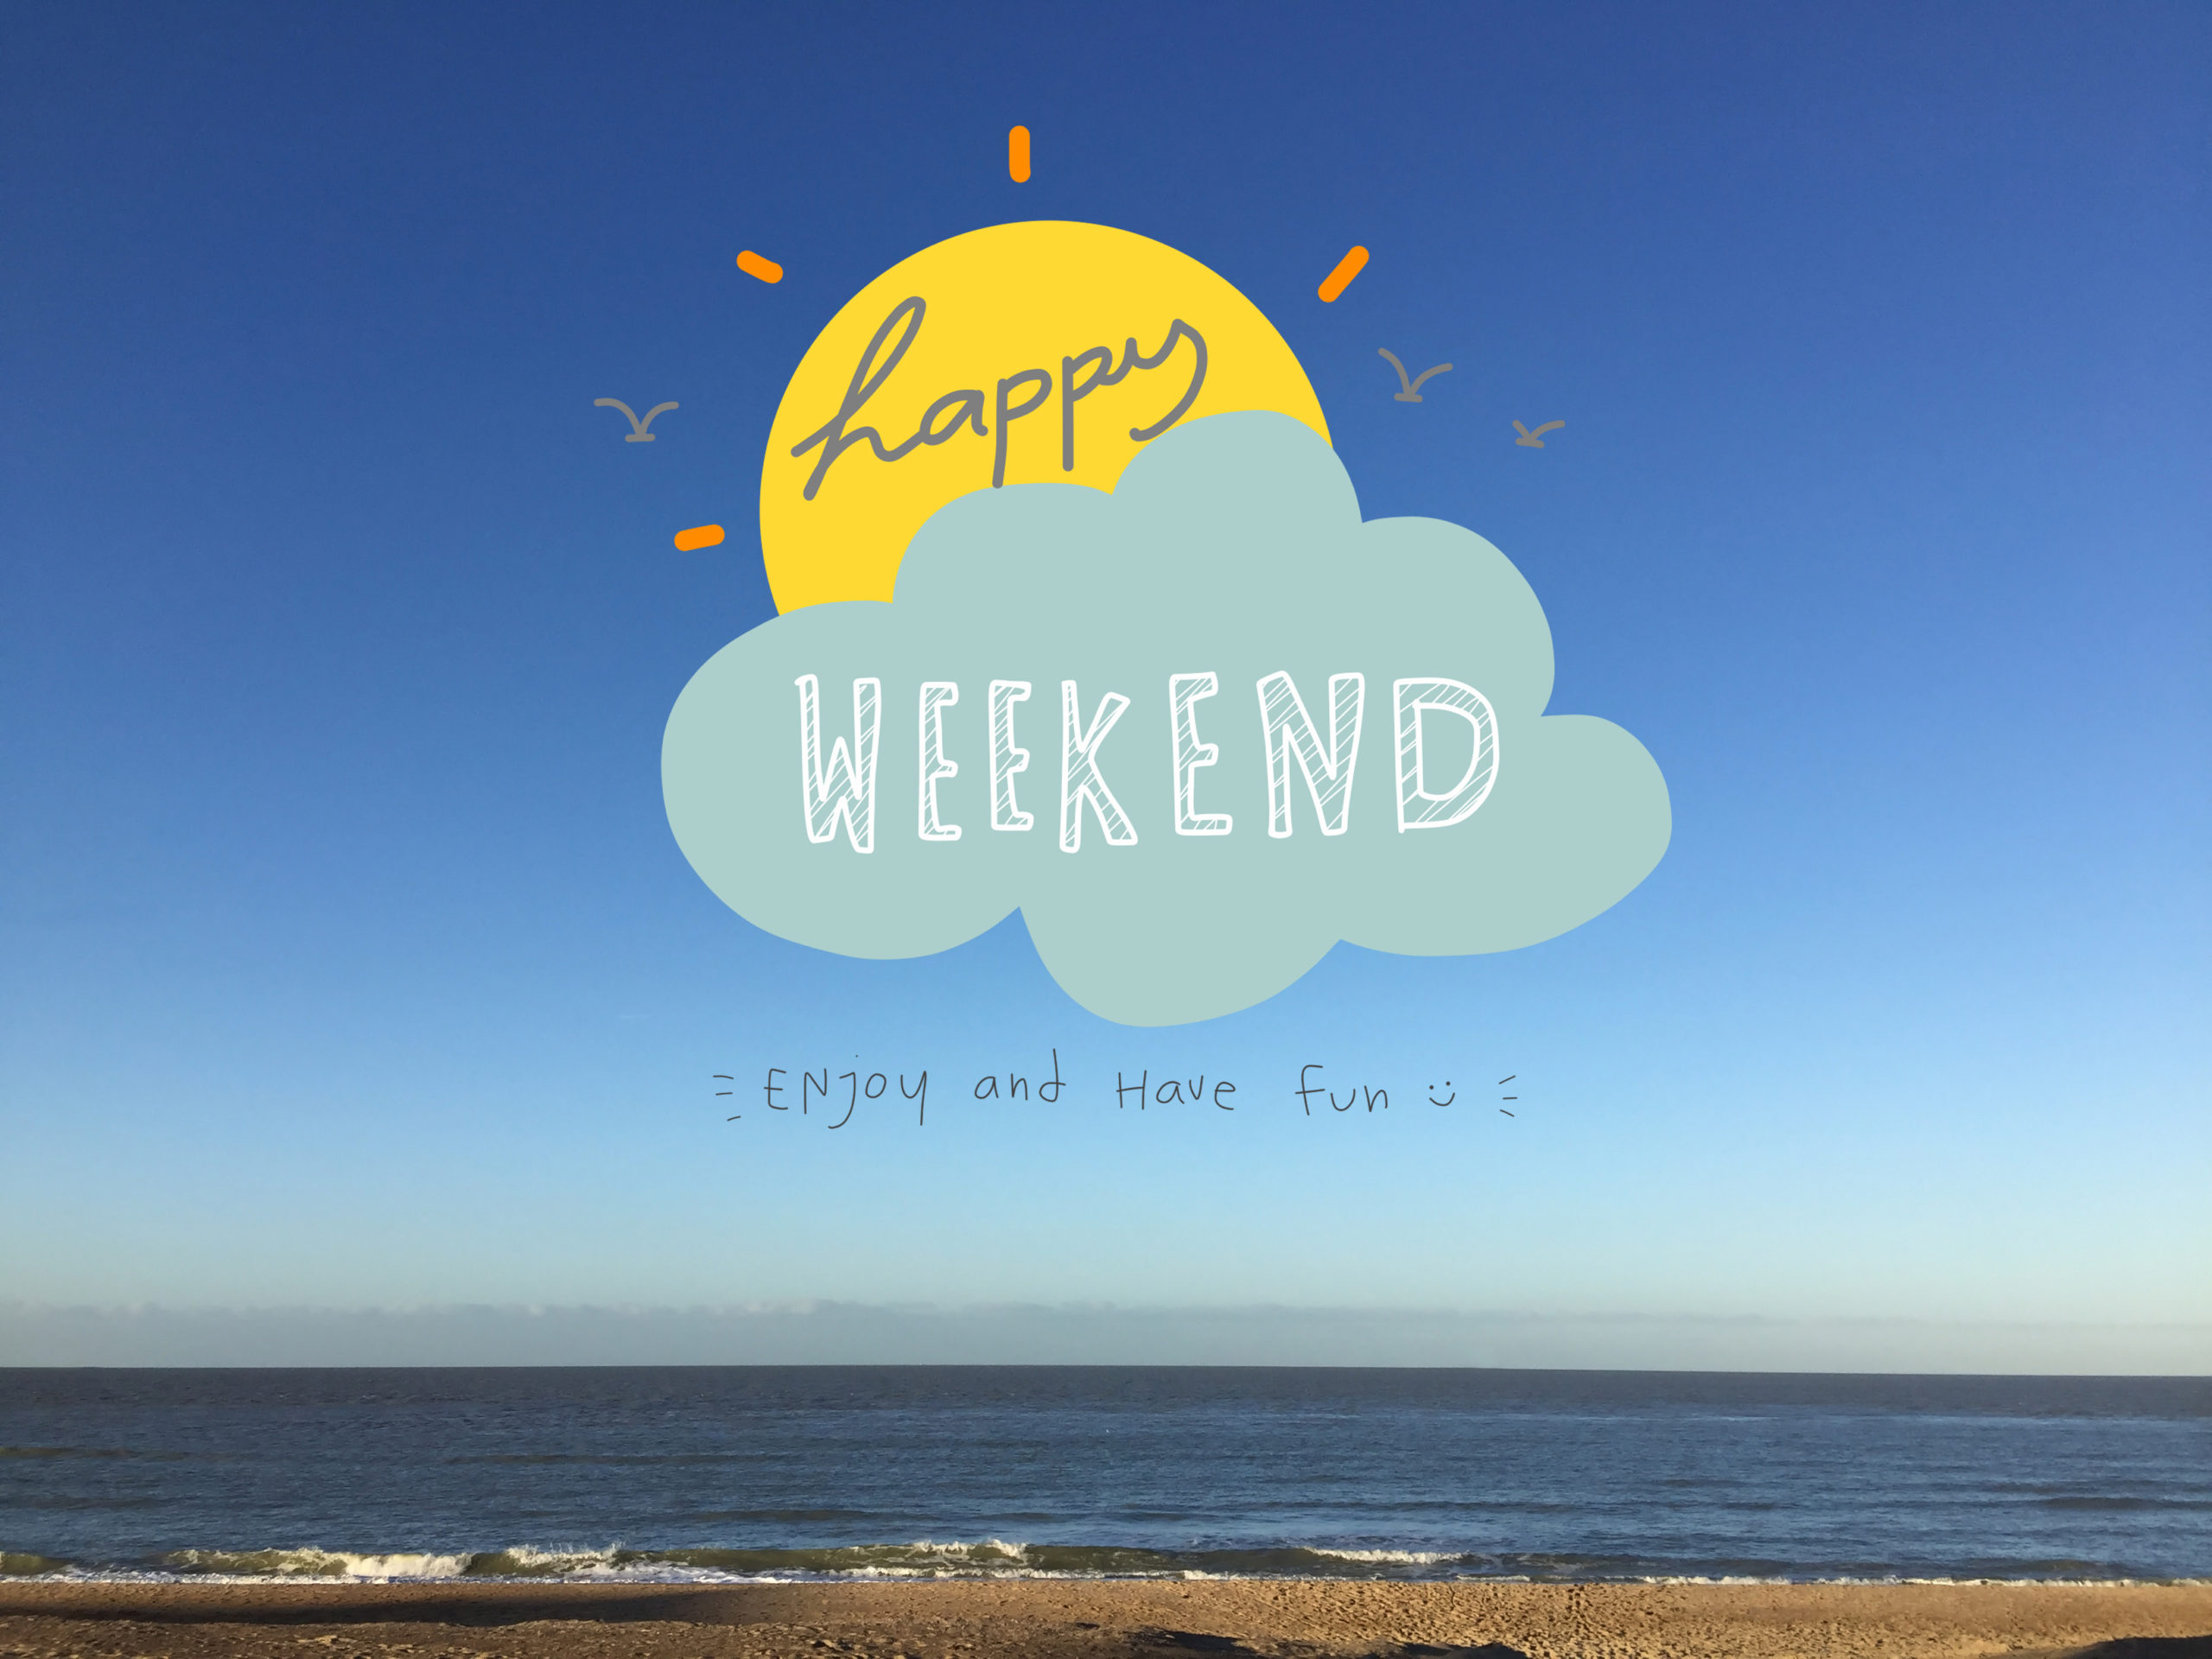 Happy weekend word on sun and cloud on beautiful blue sky and beach